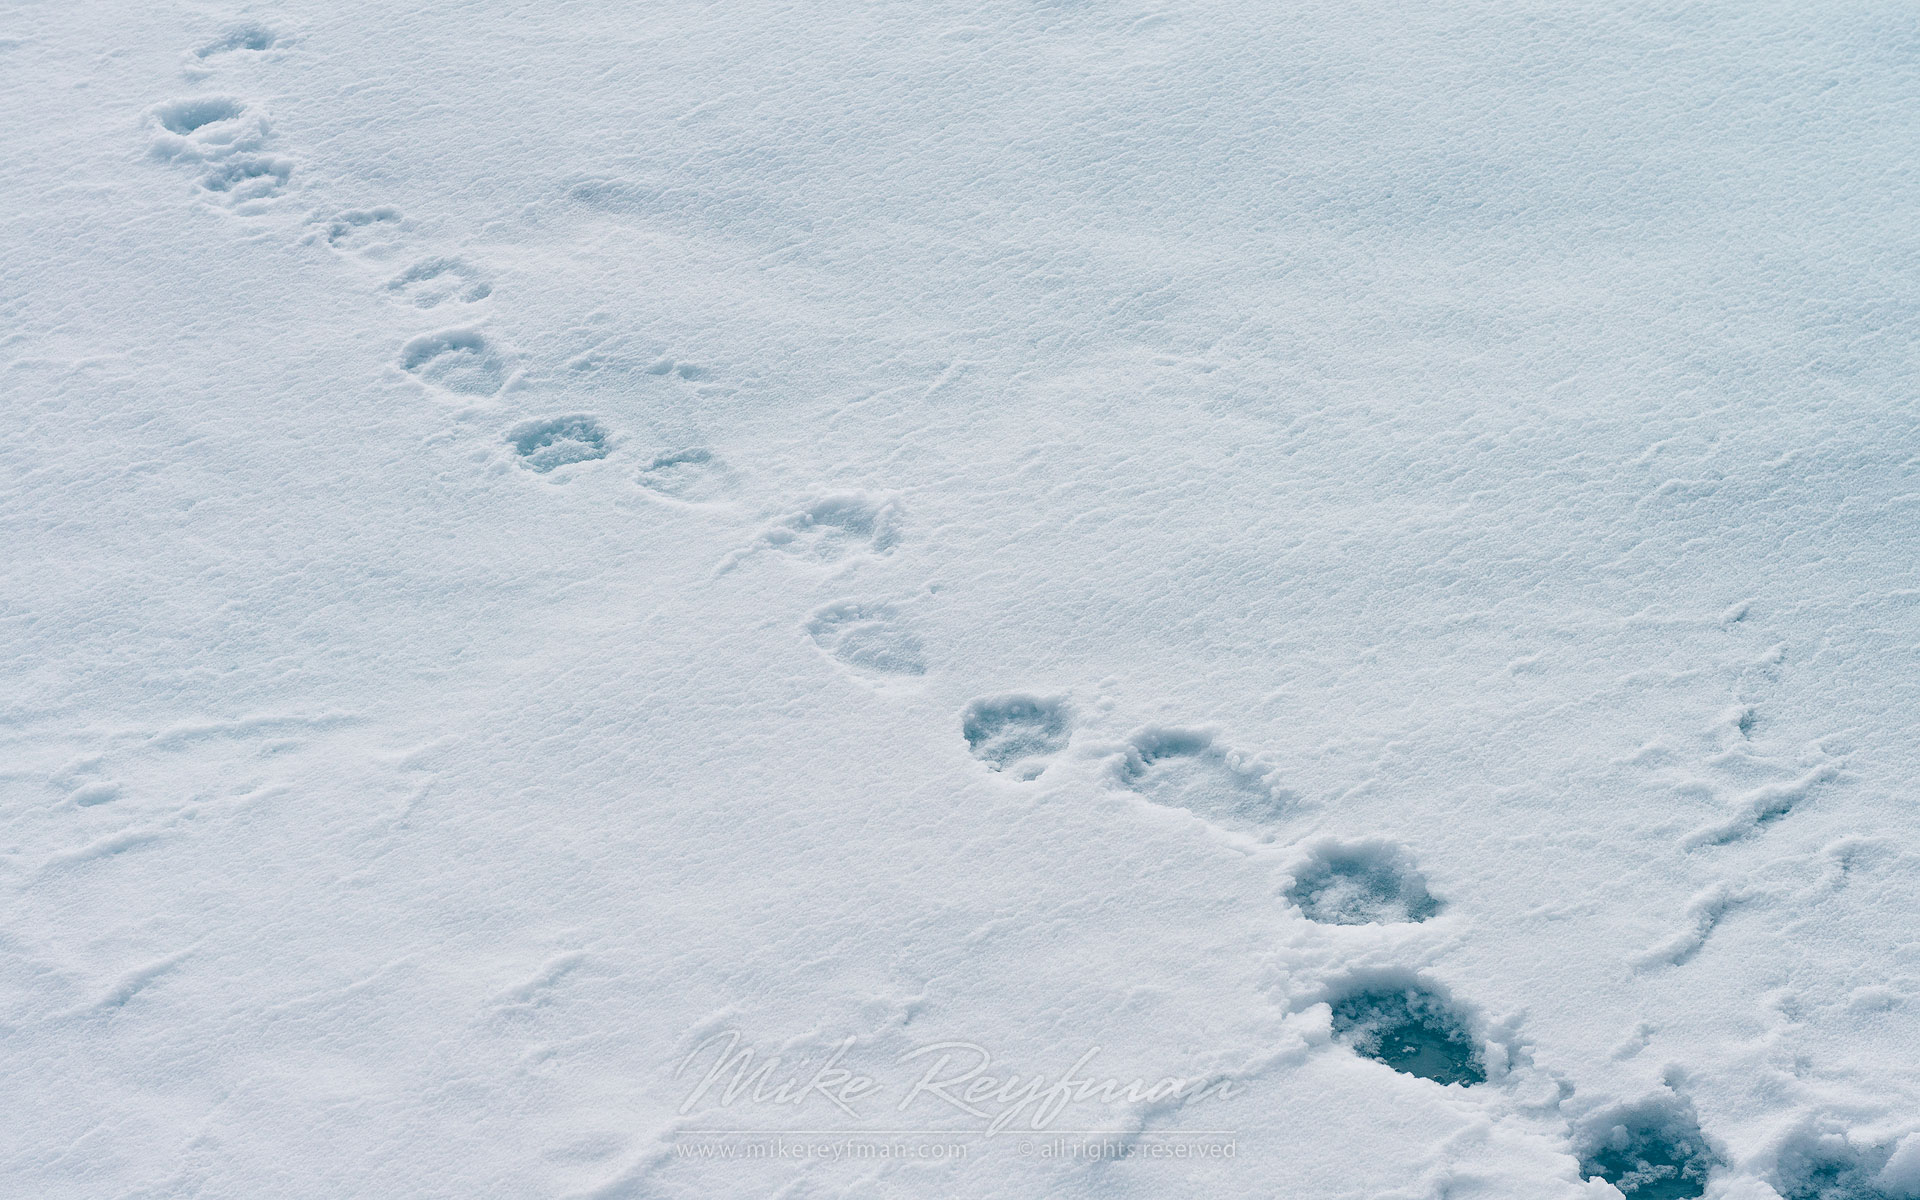 Polar Bear footprints on an ice floe near Svalbard (Spitsbergen) Archipelago, Norway. 81st parallel North.  - Arctic-Landscape-Svalbard-Spitsbergen-Norway - Mike Reyfman Photography